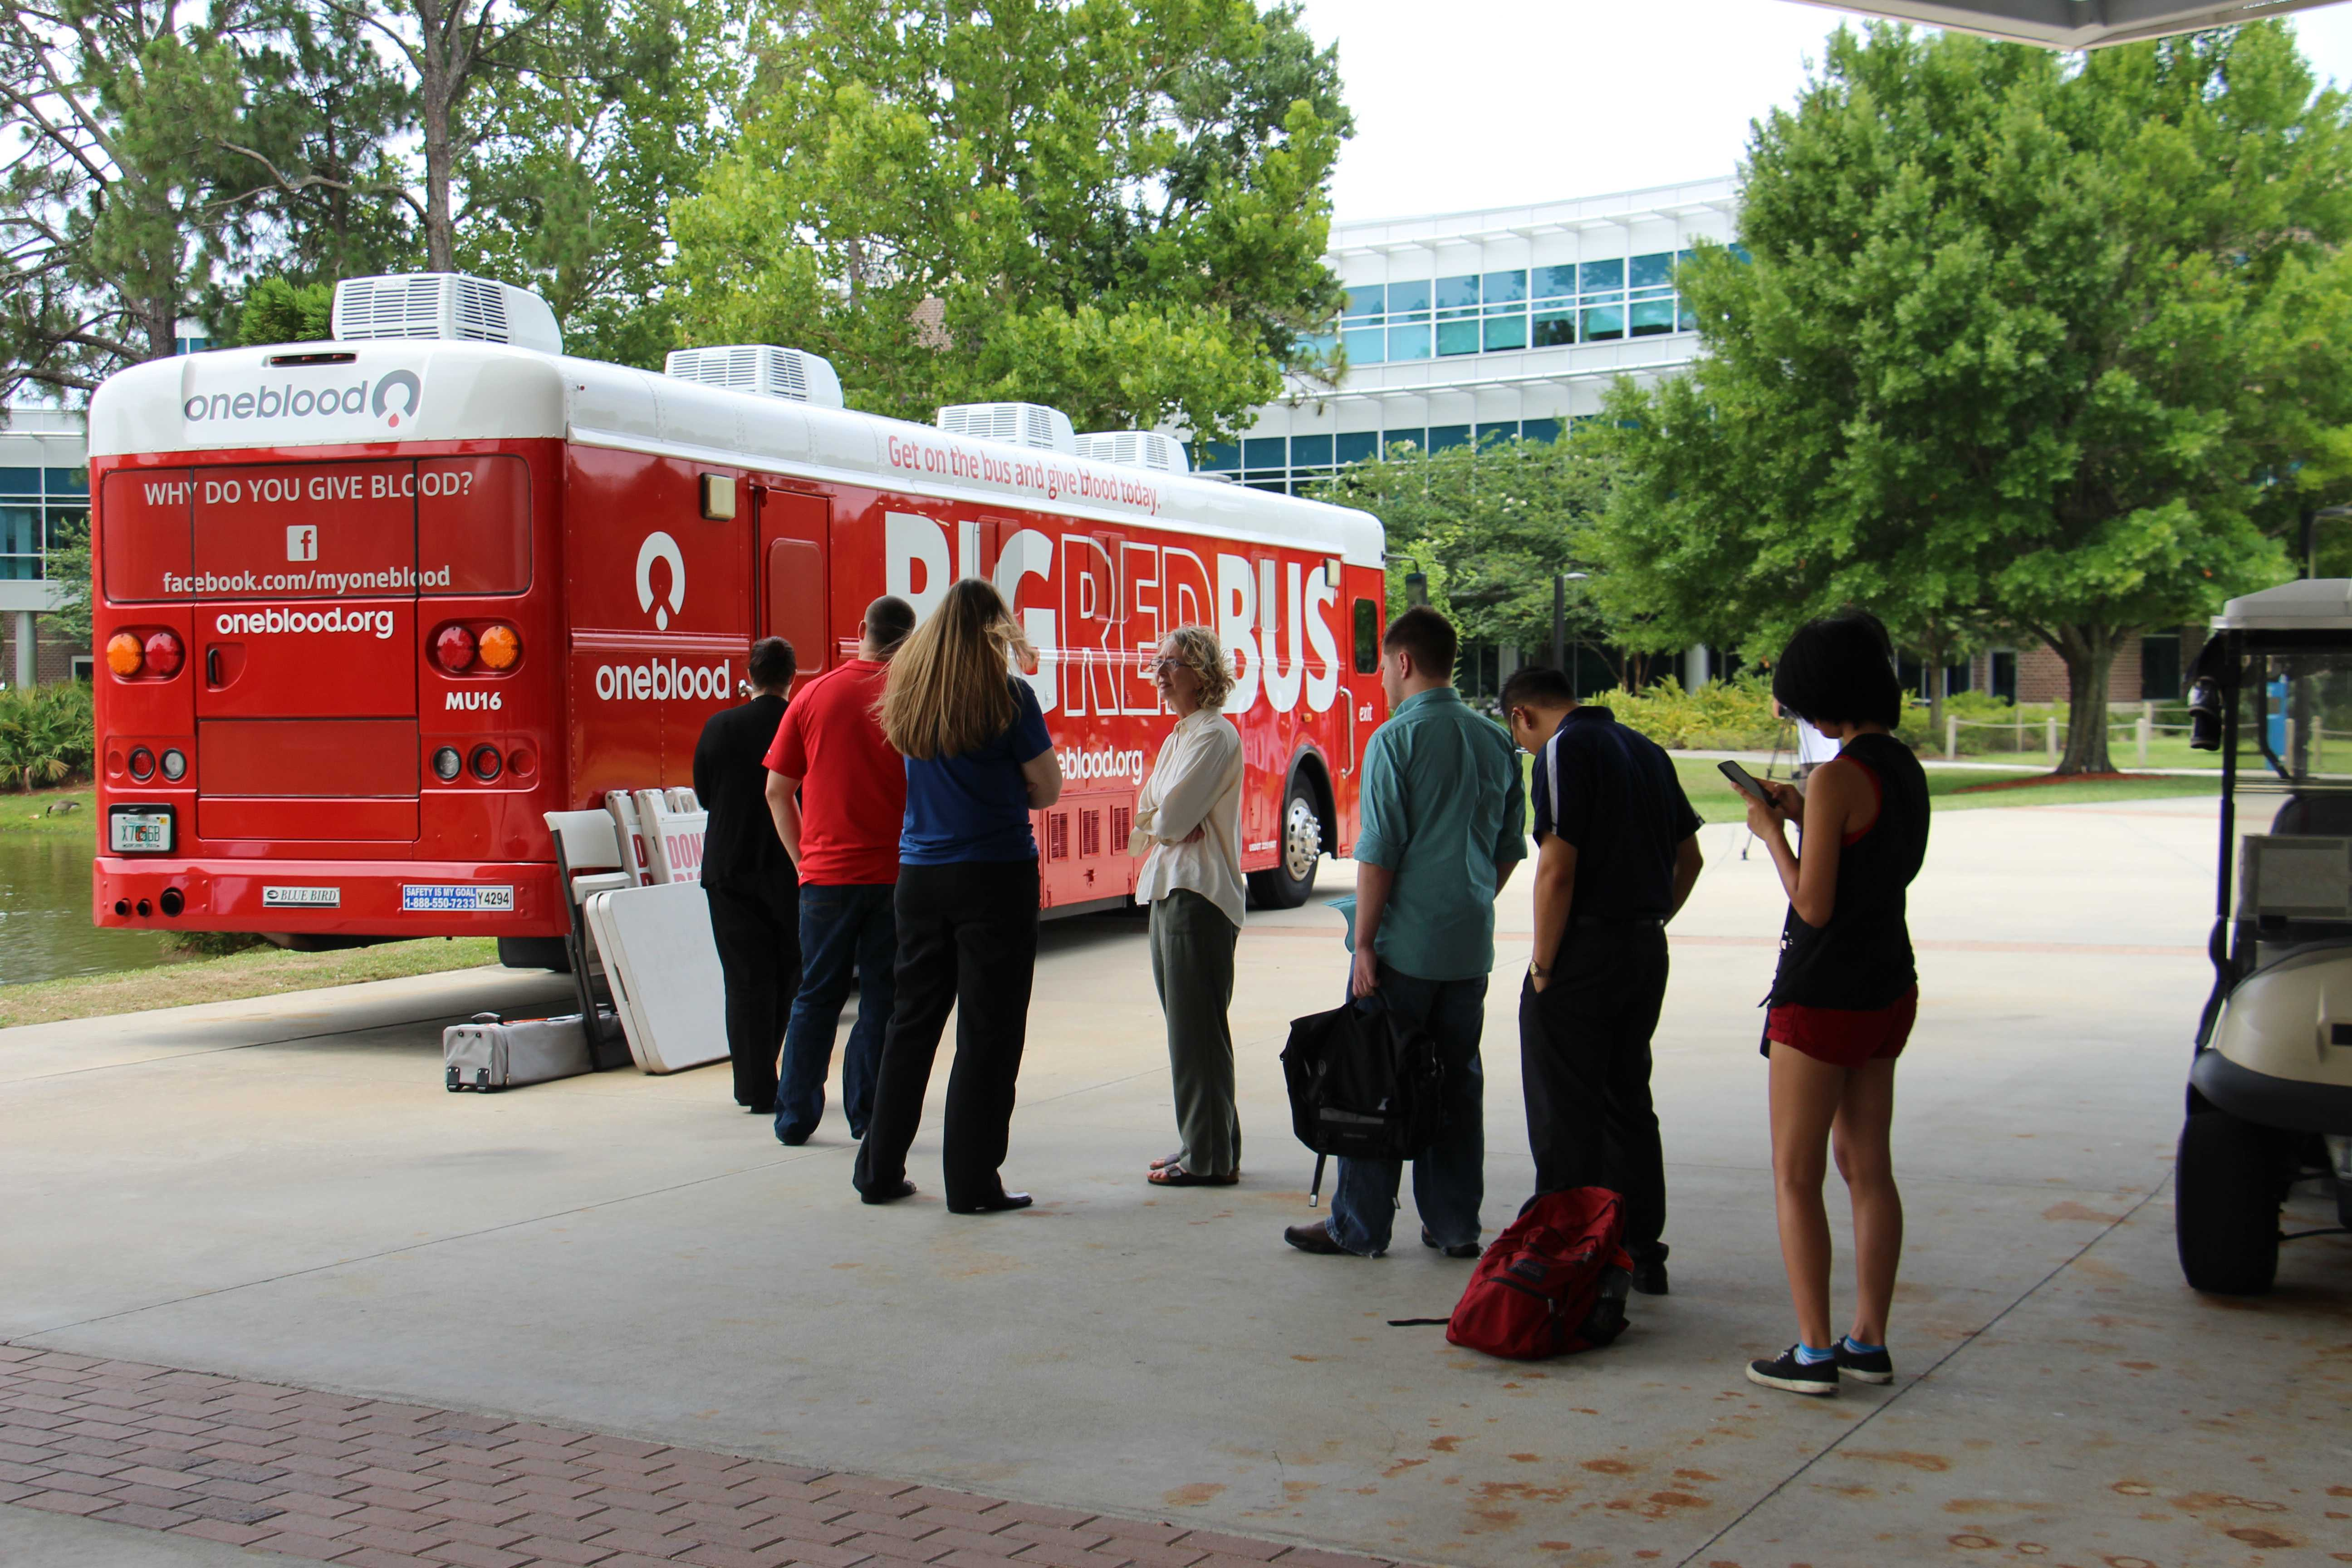 Blood Drive happening on campus